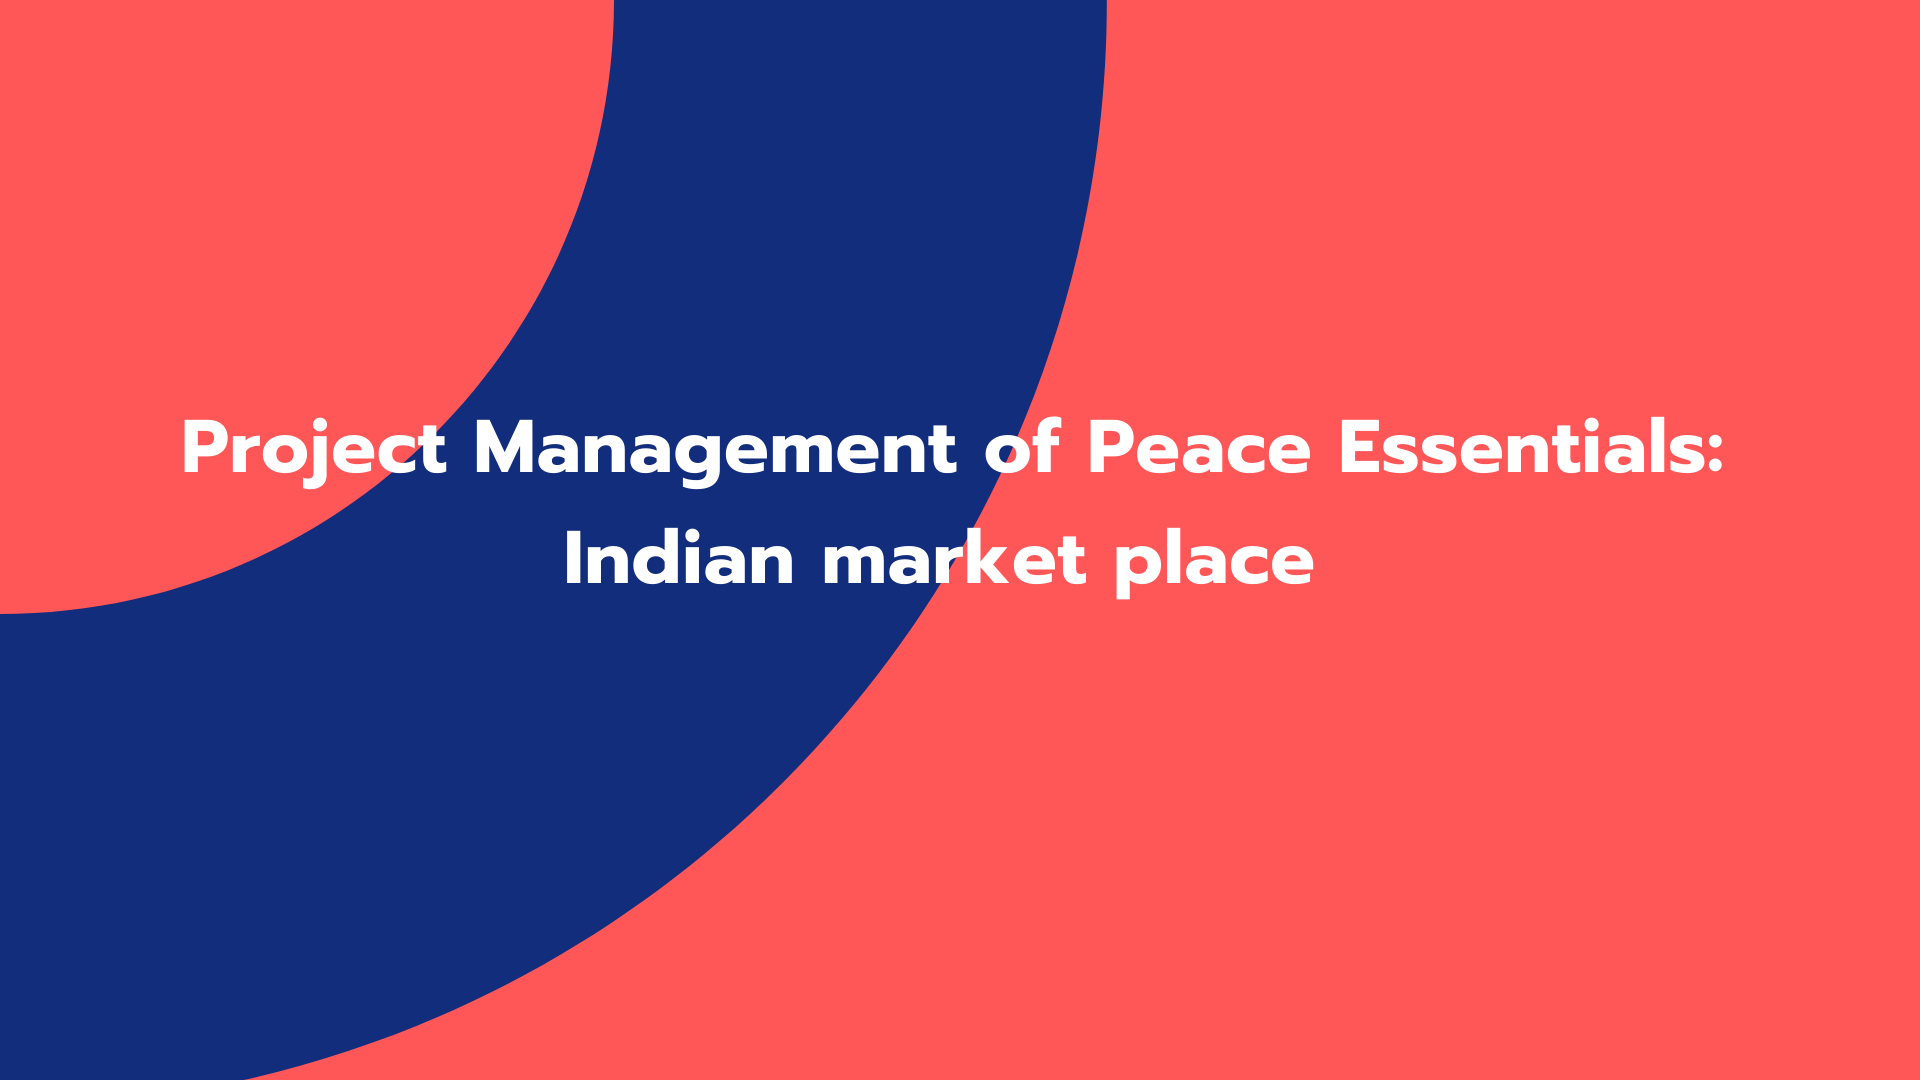 Project Management of Peace Essentials: Indian market place